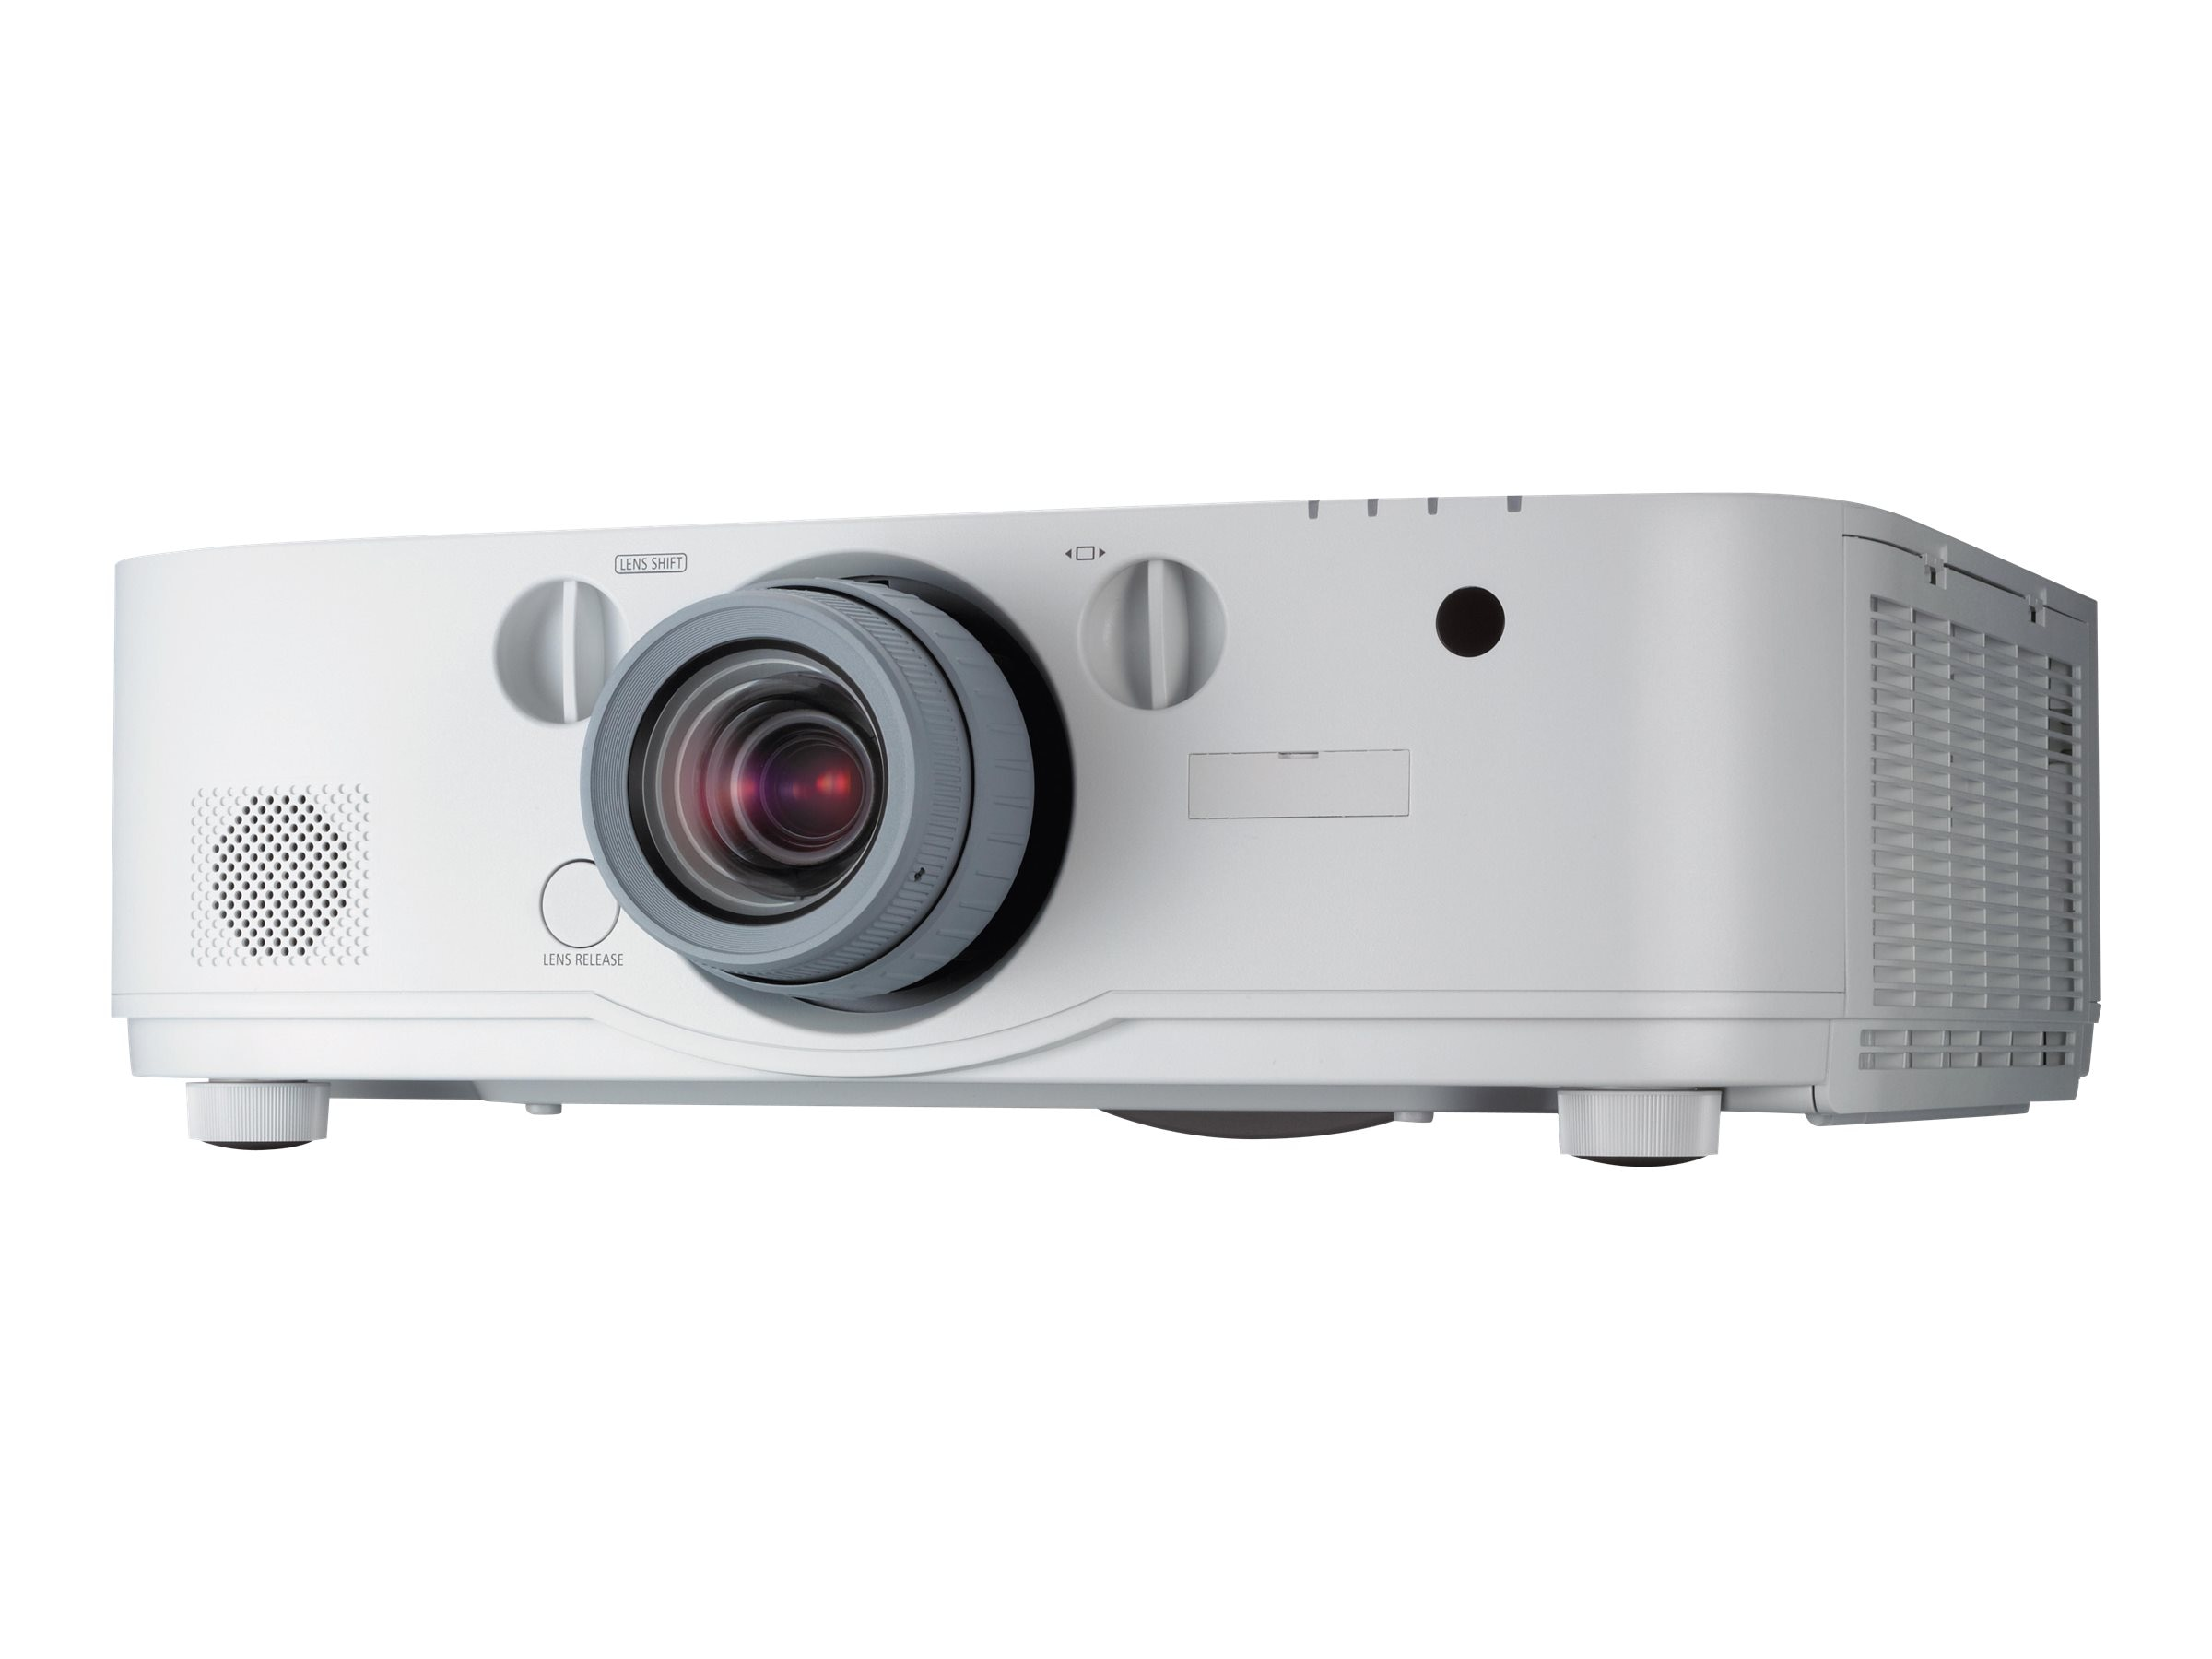 Open Box NEC PA571W WUXGA LCD Projector, 5700 Lumens, White with 1.5-3.0:1 Zoom Lens, NP-PA571W-13ZL, 30954104, Projectors